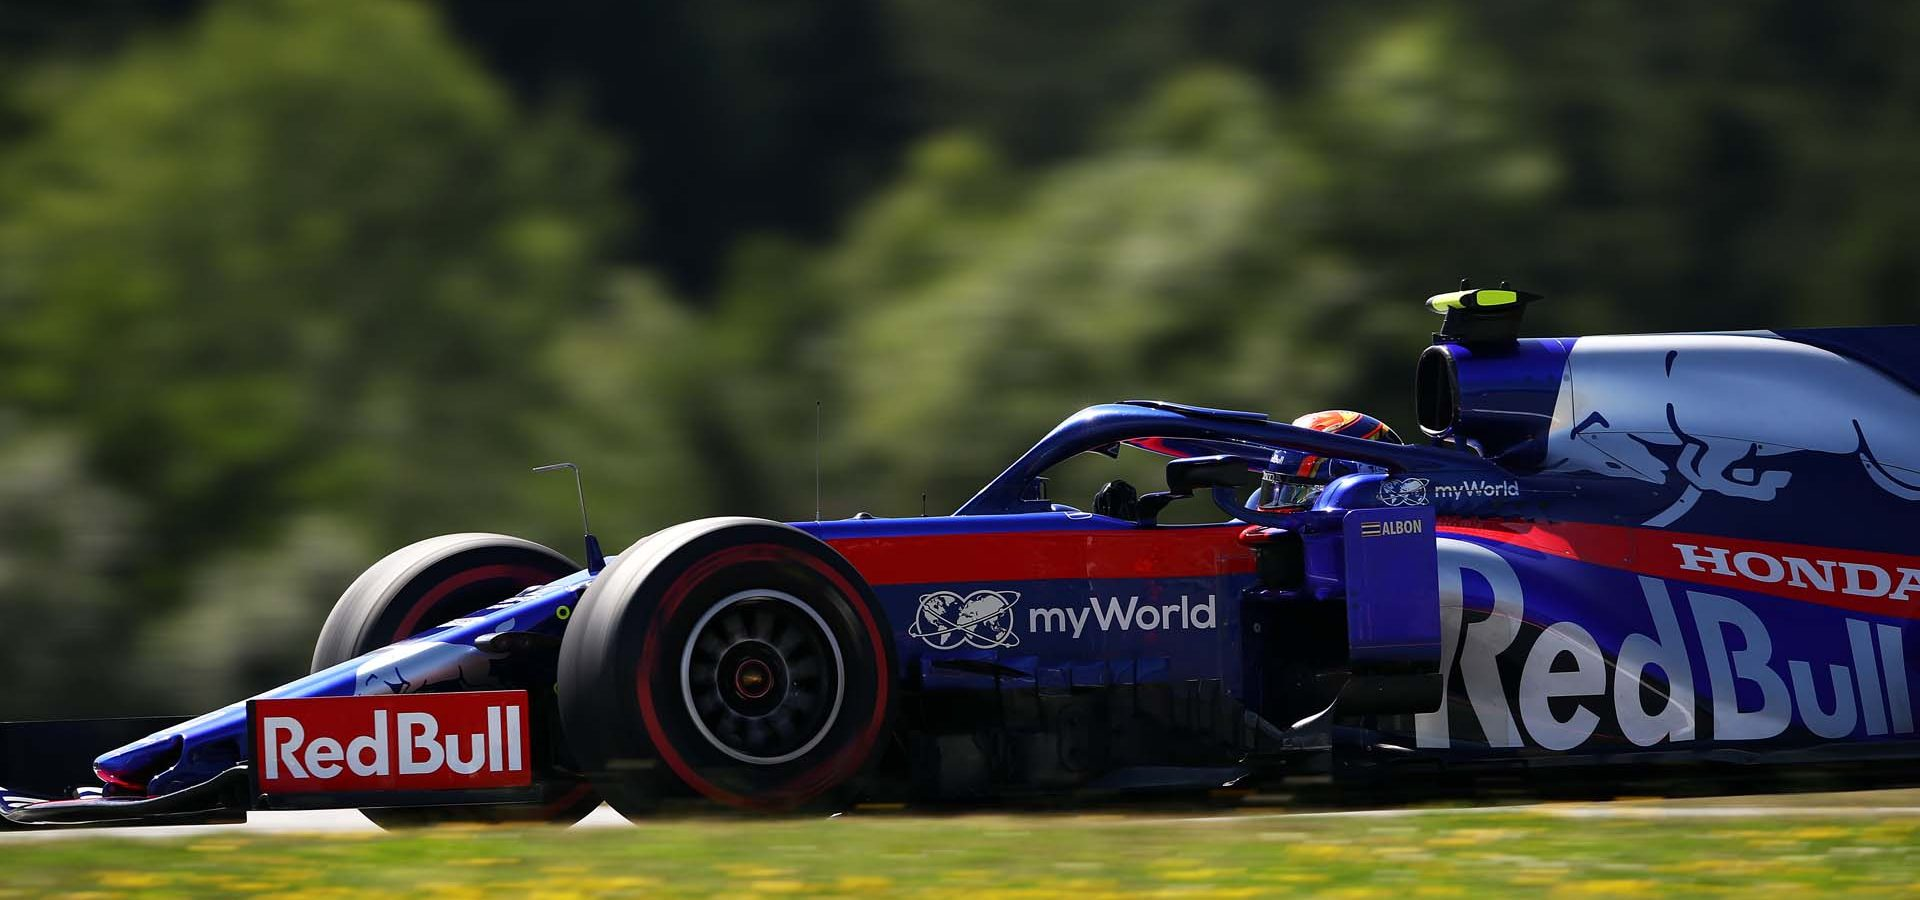 SPIELBERG, AUSTRIA - JUNE 28: Alexander Albon of Thailand driving the (23) Scuderia Toro Rosso STR14 Honda on track during practice for the F1 Grand Prix of Austria at Red Bull Ring on June 28, 2019 in Spielberg, Austria. (Photo by Bryn Lennon/Getty Images) // Getty Images / Red Bull Content Pool  // AP-1ZSNDTQ992111 // Usage for editorial use only // Please go to www.redbullcontentpool.com for further information. //